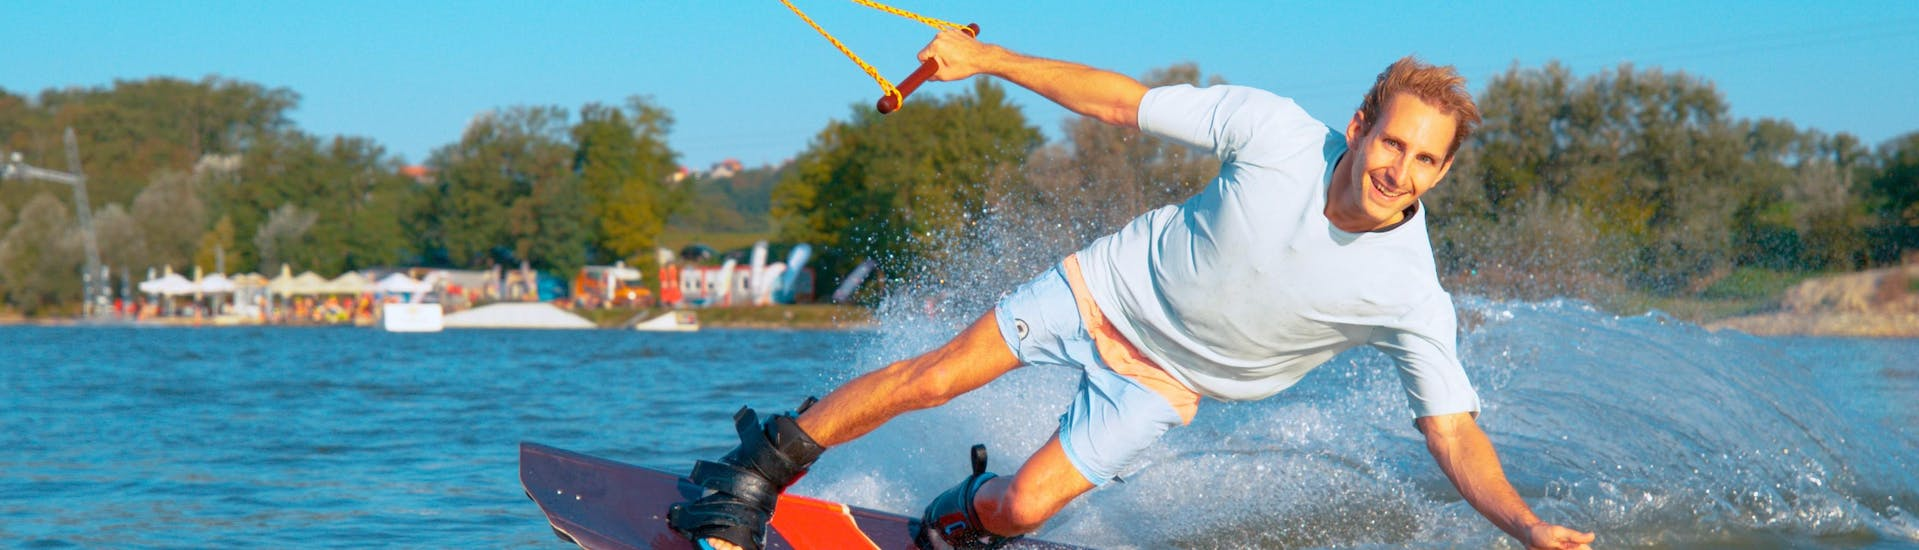 Happy guy is wakeboarding on a beautiful day